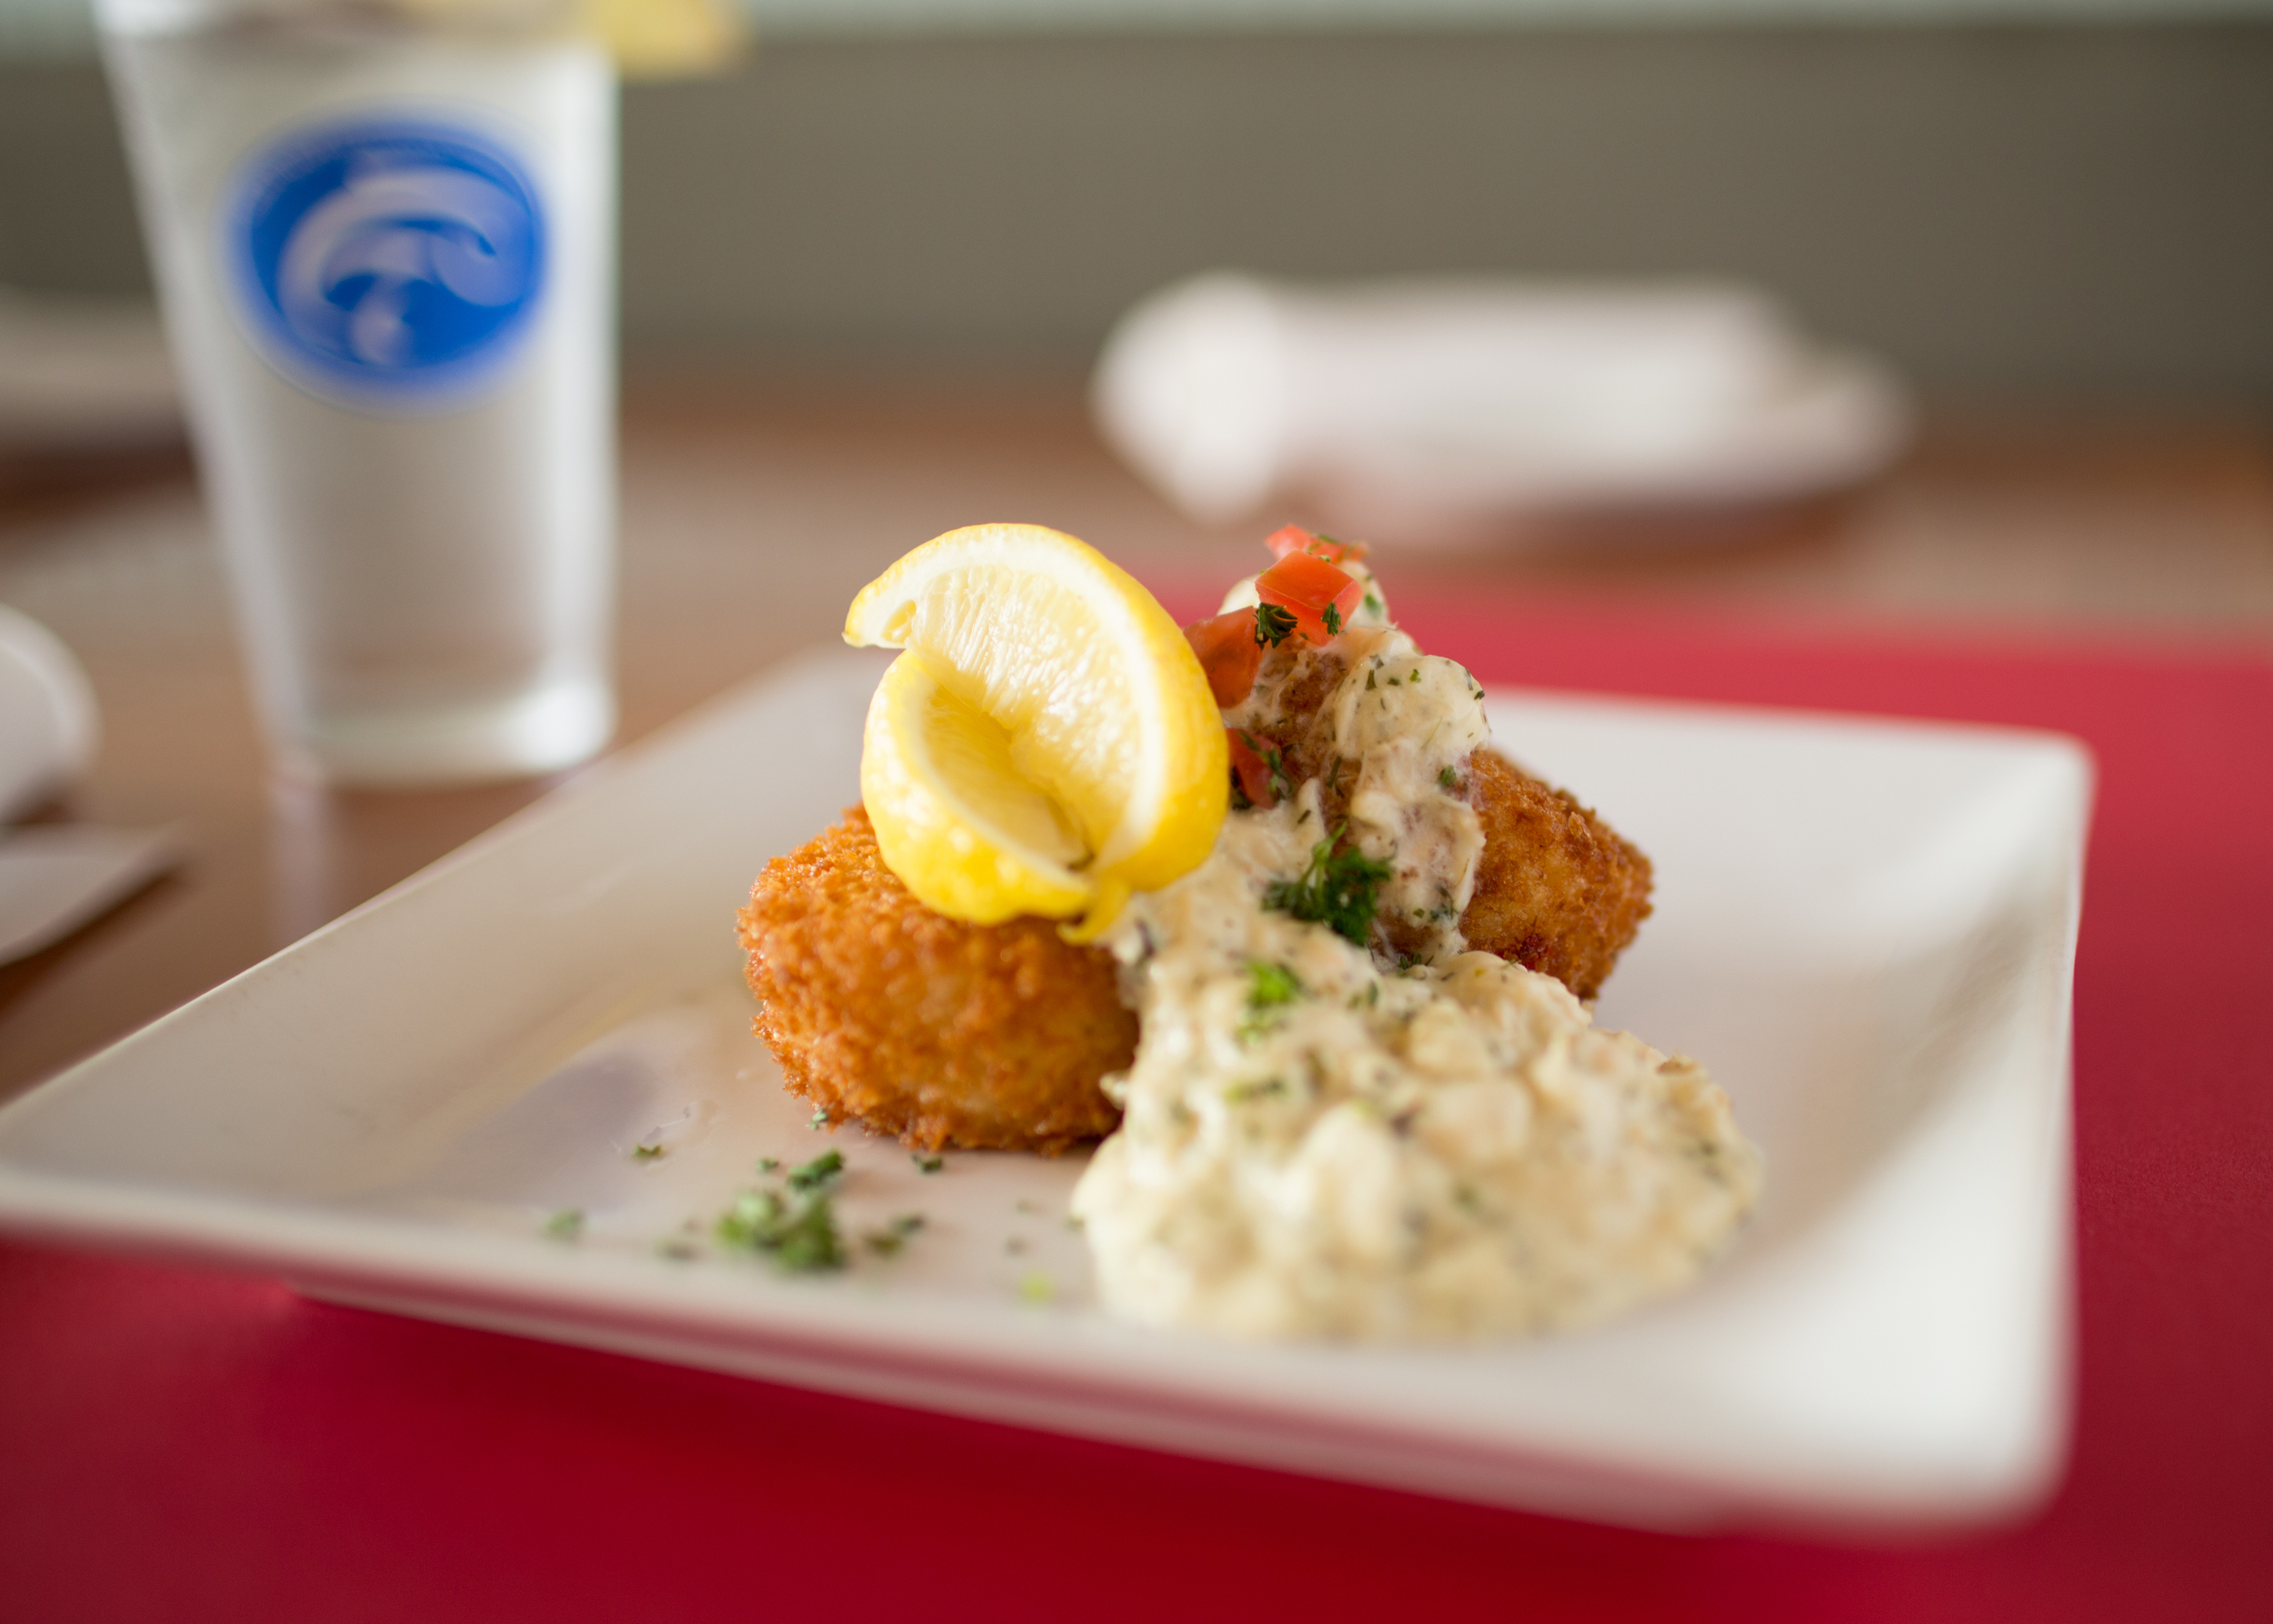 capefearseafoodco-13-March 31 2013.jpg